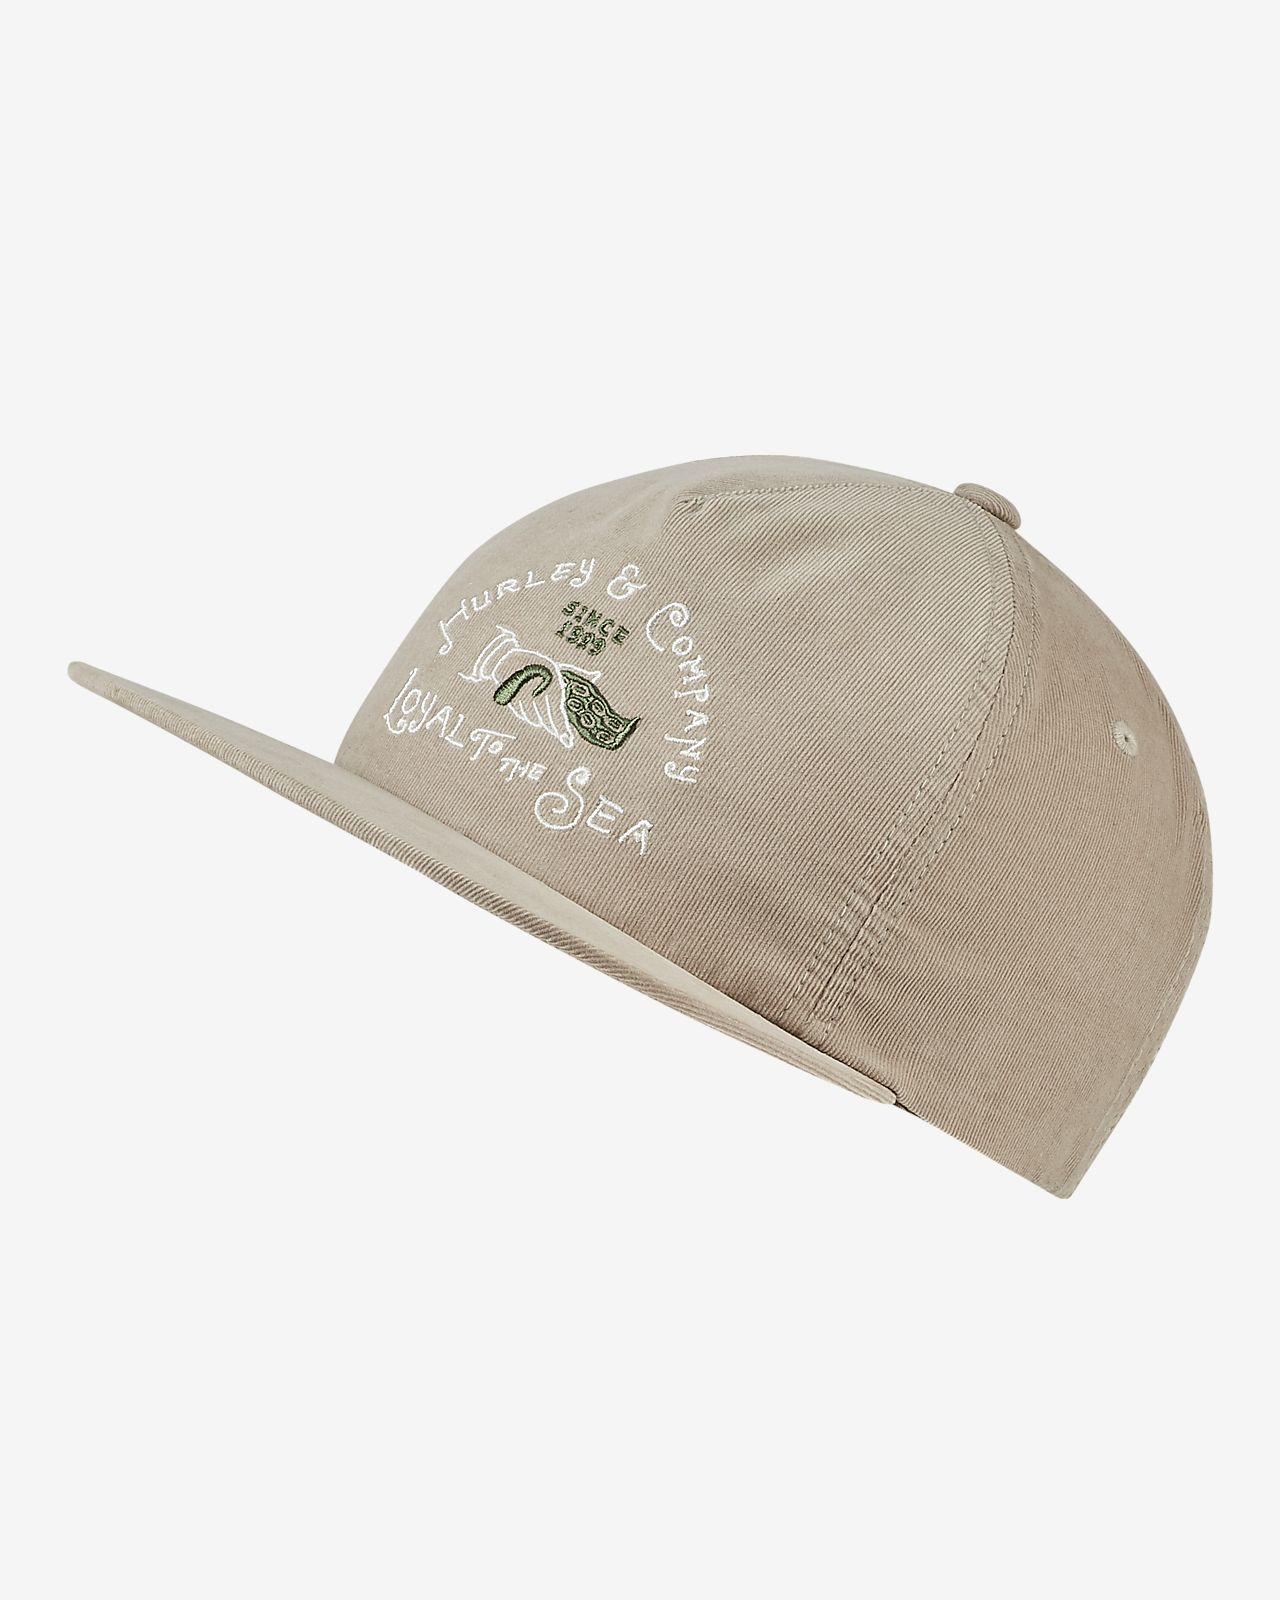 Hurley Loyal To The Sea Men's Hat